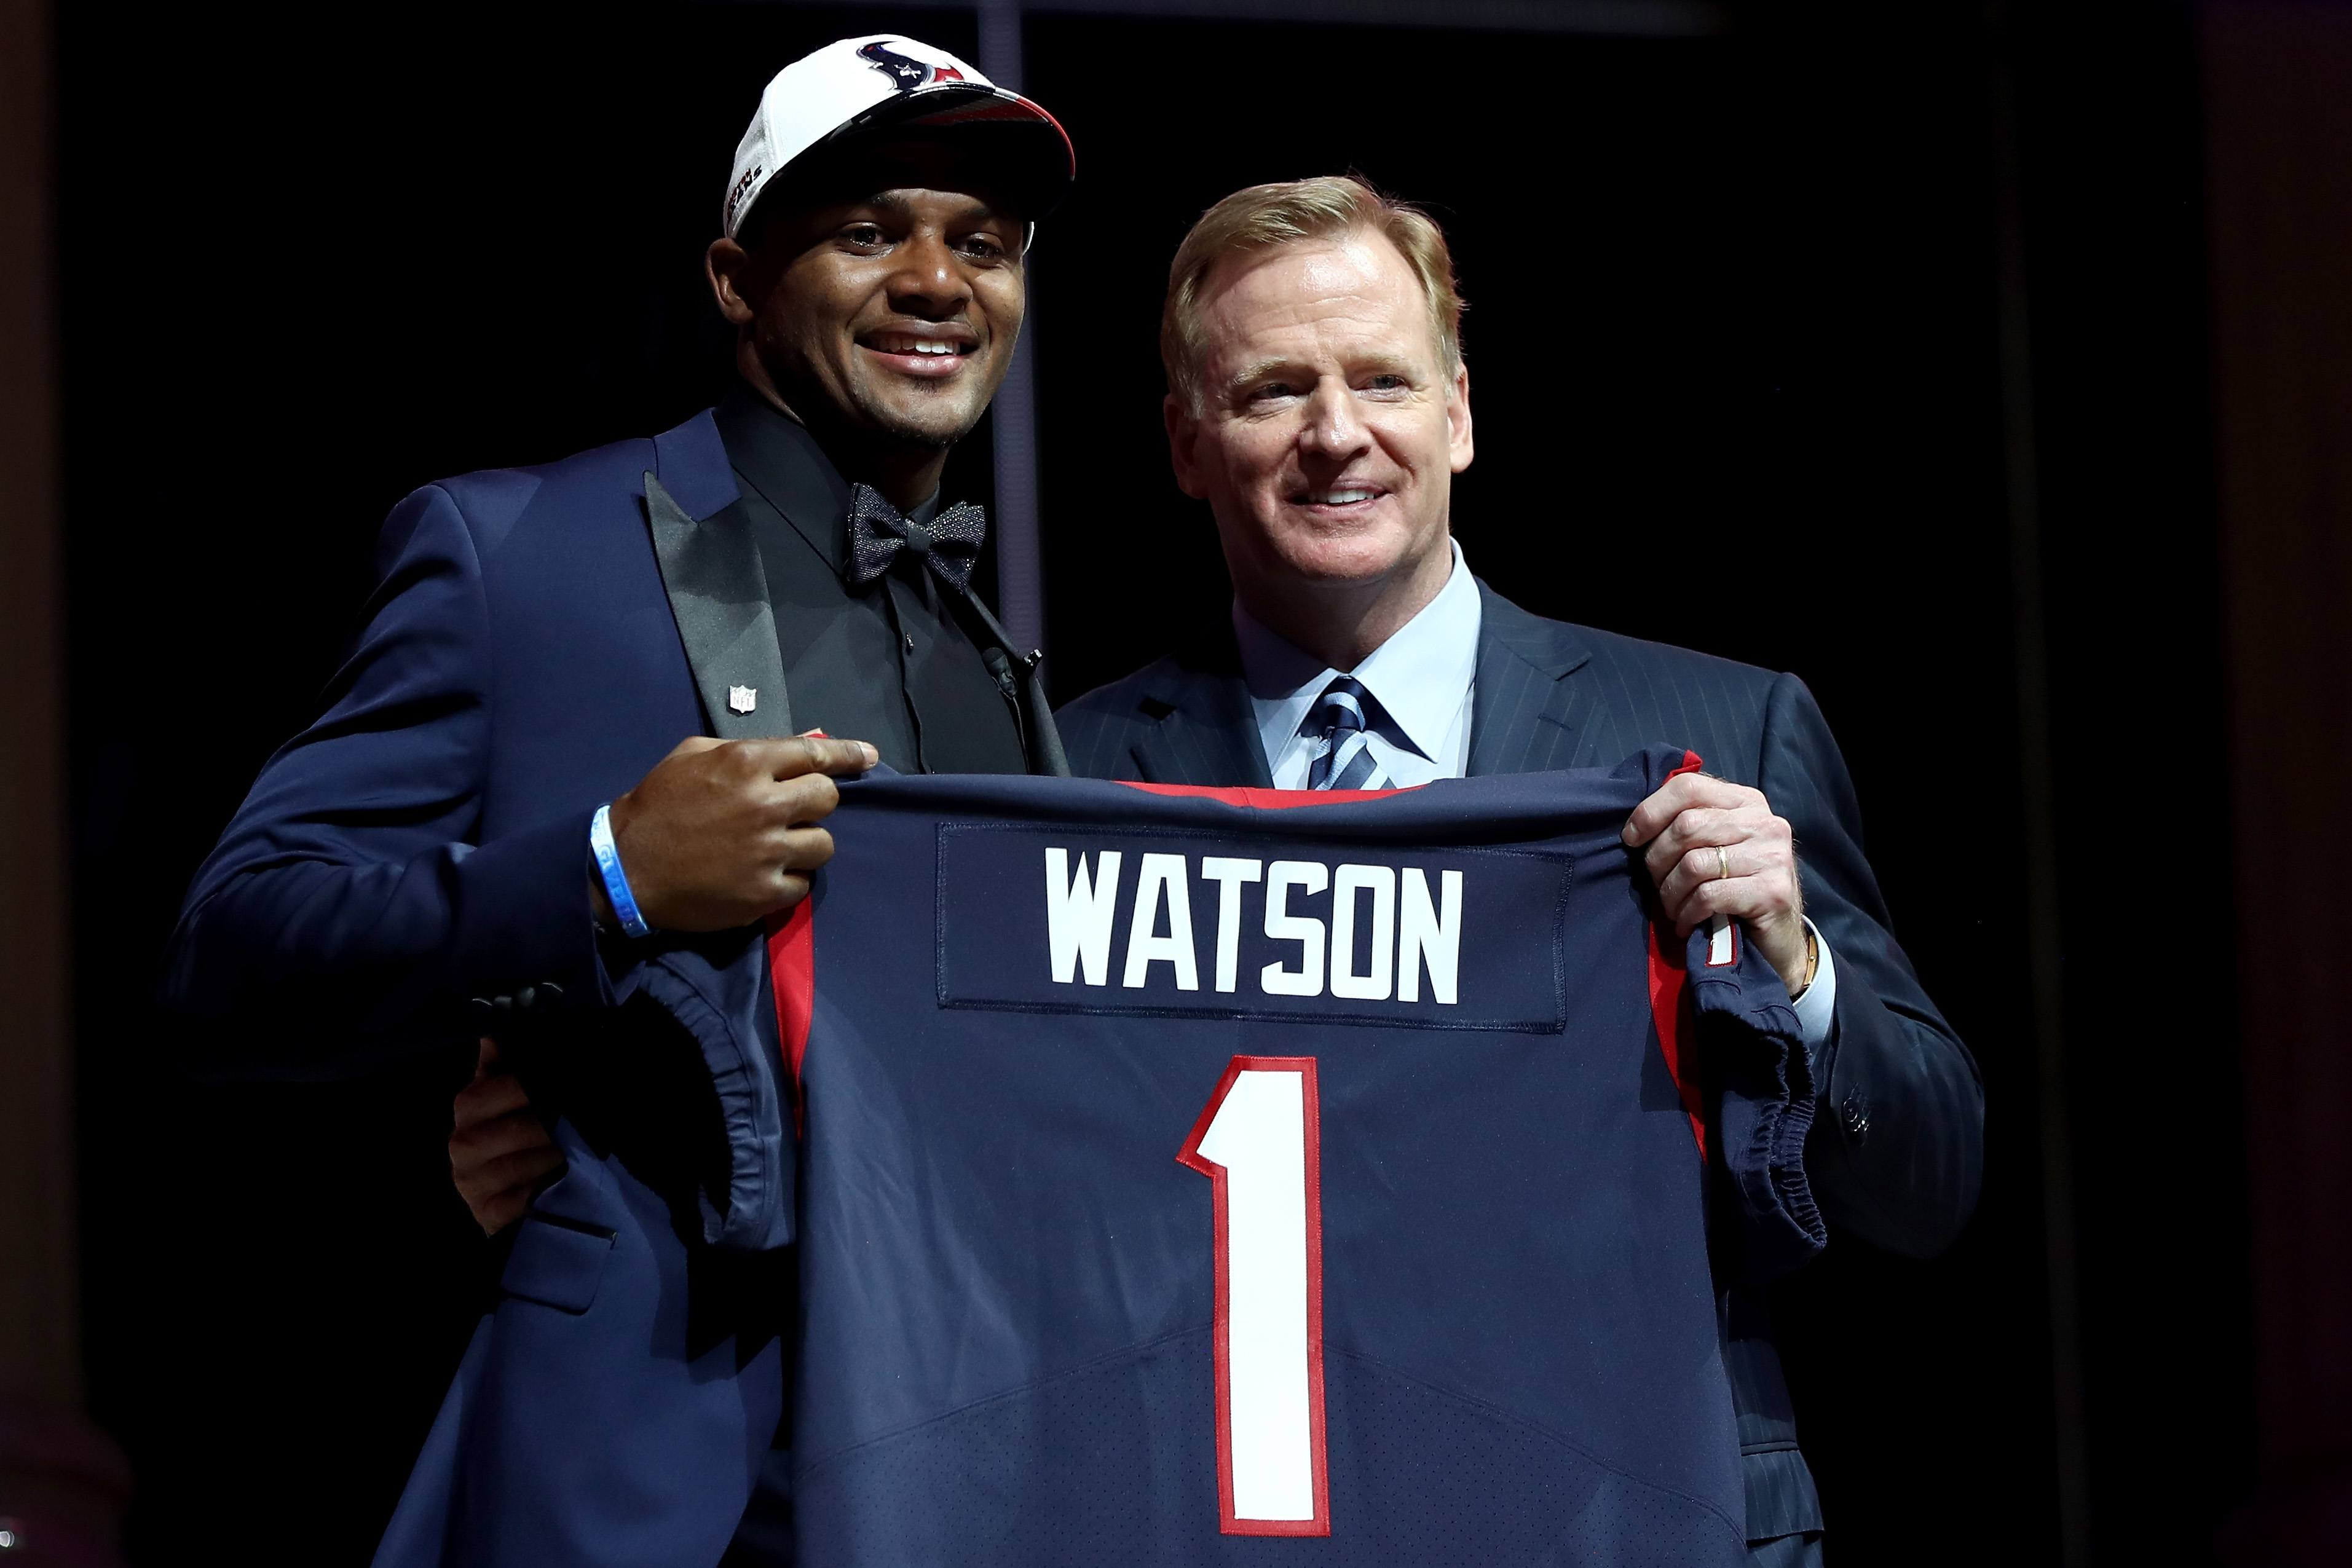 Deshaun Watson poses with NFL Commissioner Roger Goodell after being drafted by the Houston Texans.